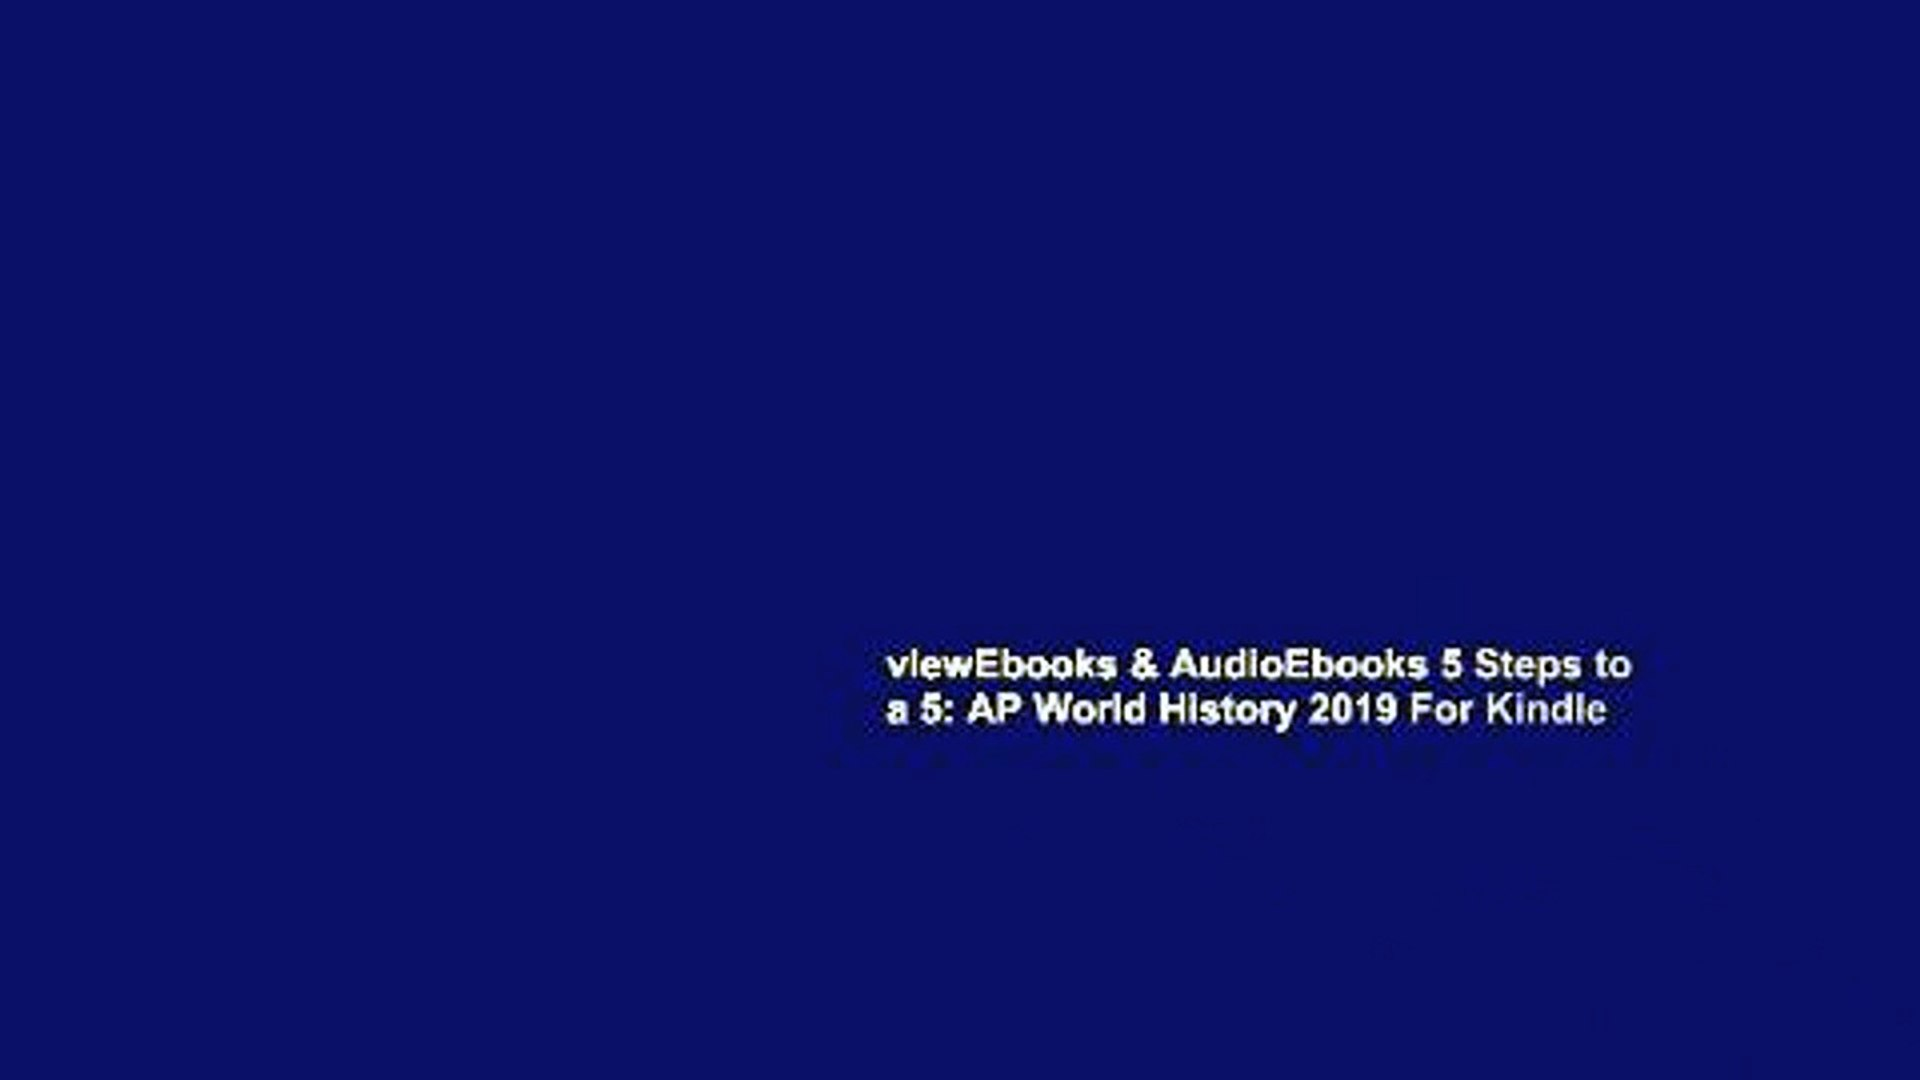 viewEbooks & AudioEbooks 5 Steps to a 5: AP World History 2019 For Kindle